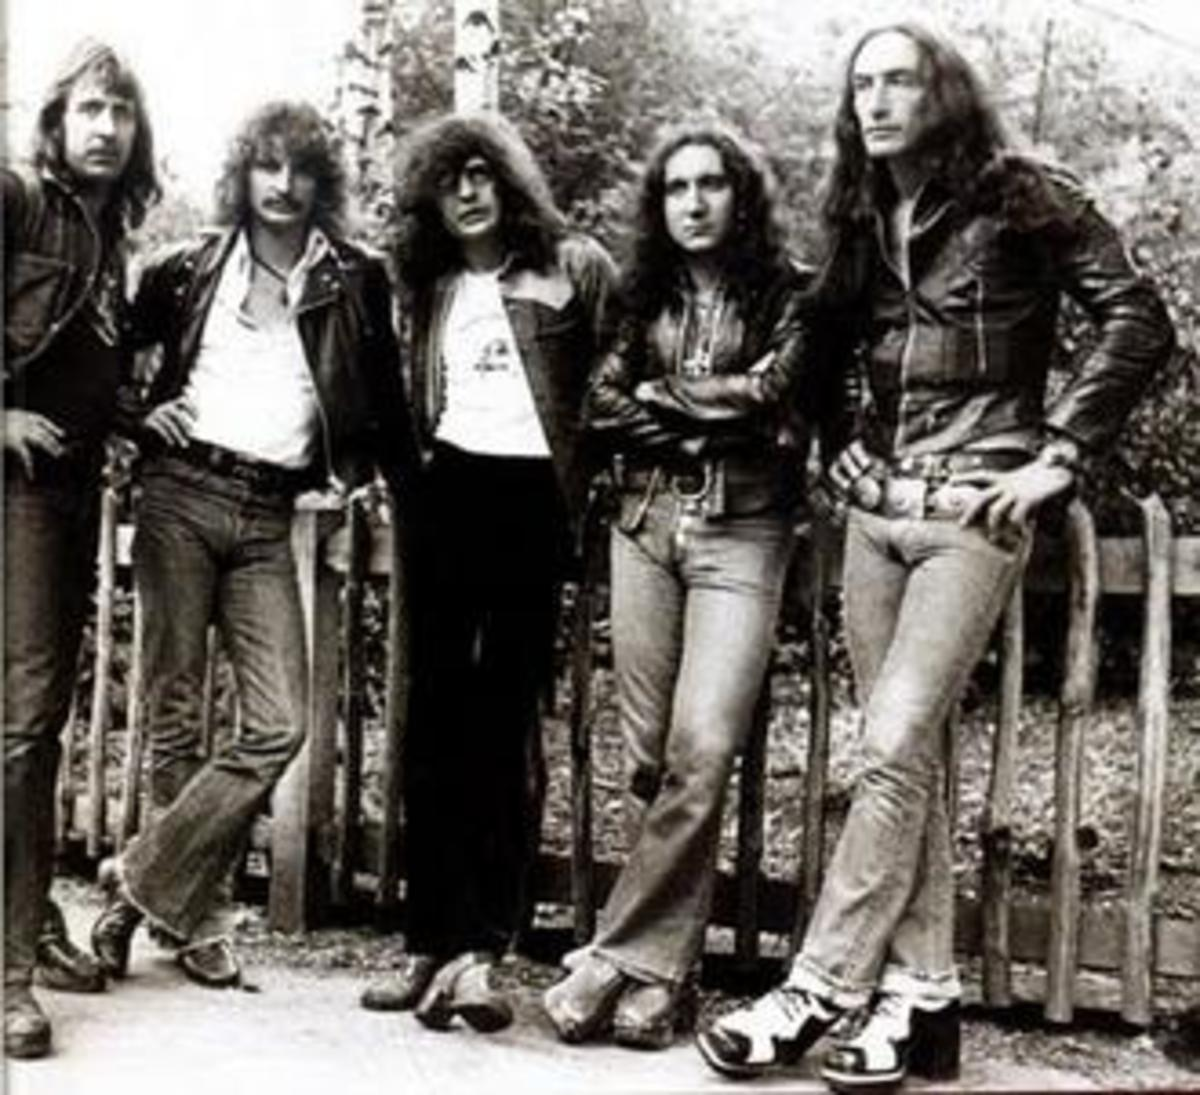 loss-of-member-of-uriah-heep-evokes-other-dickens-references-in-rock